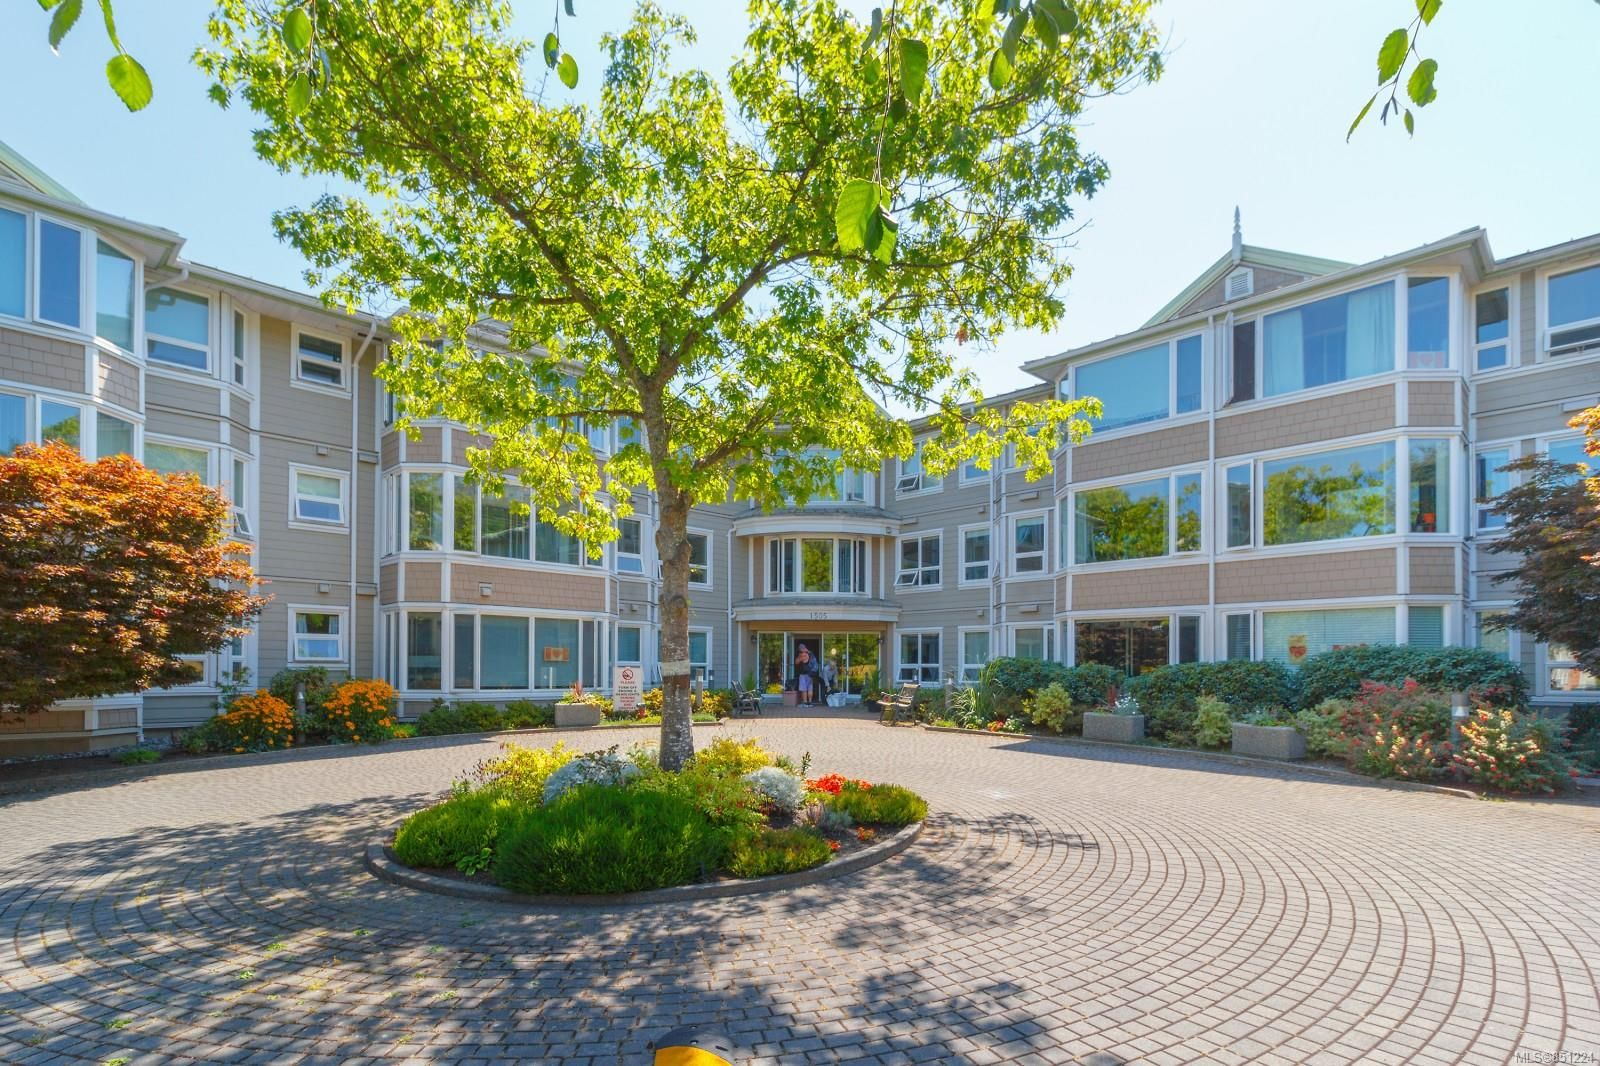 Main Photo: 312 1505 Church Ave in : SE Cedar Hill Condo for sale (Saanich East)  : MLS®# 851224